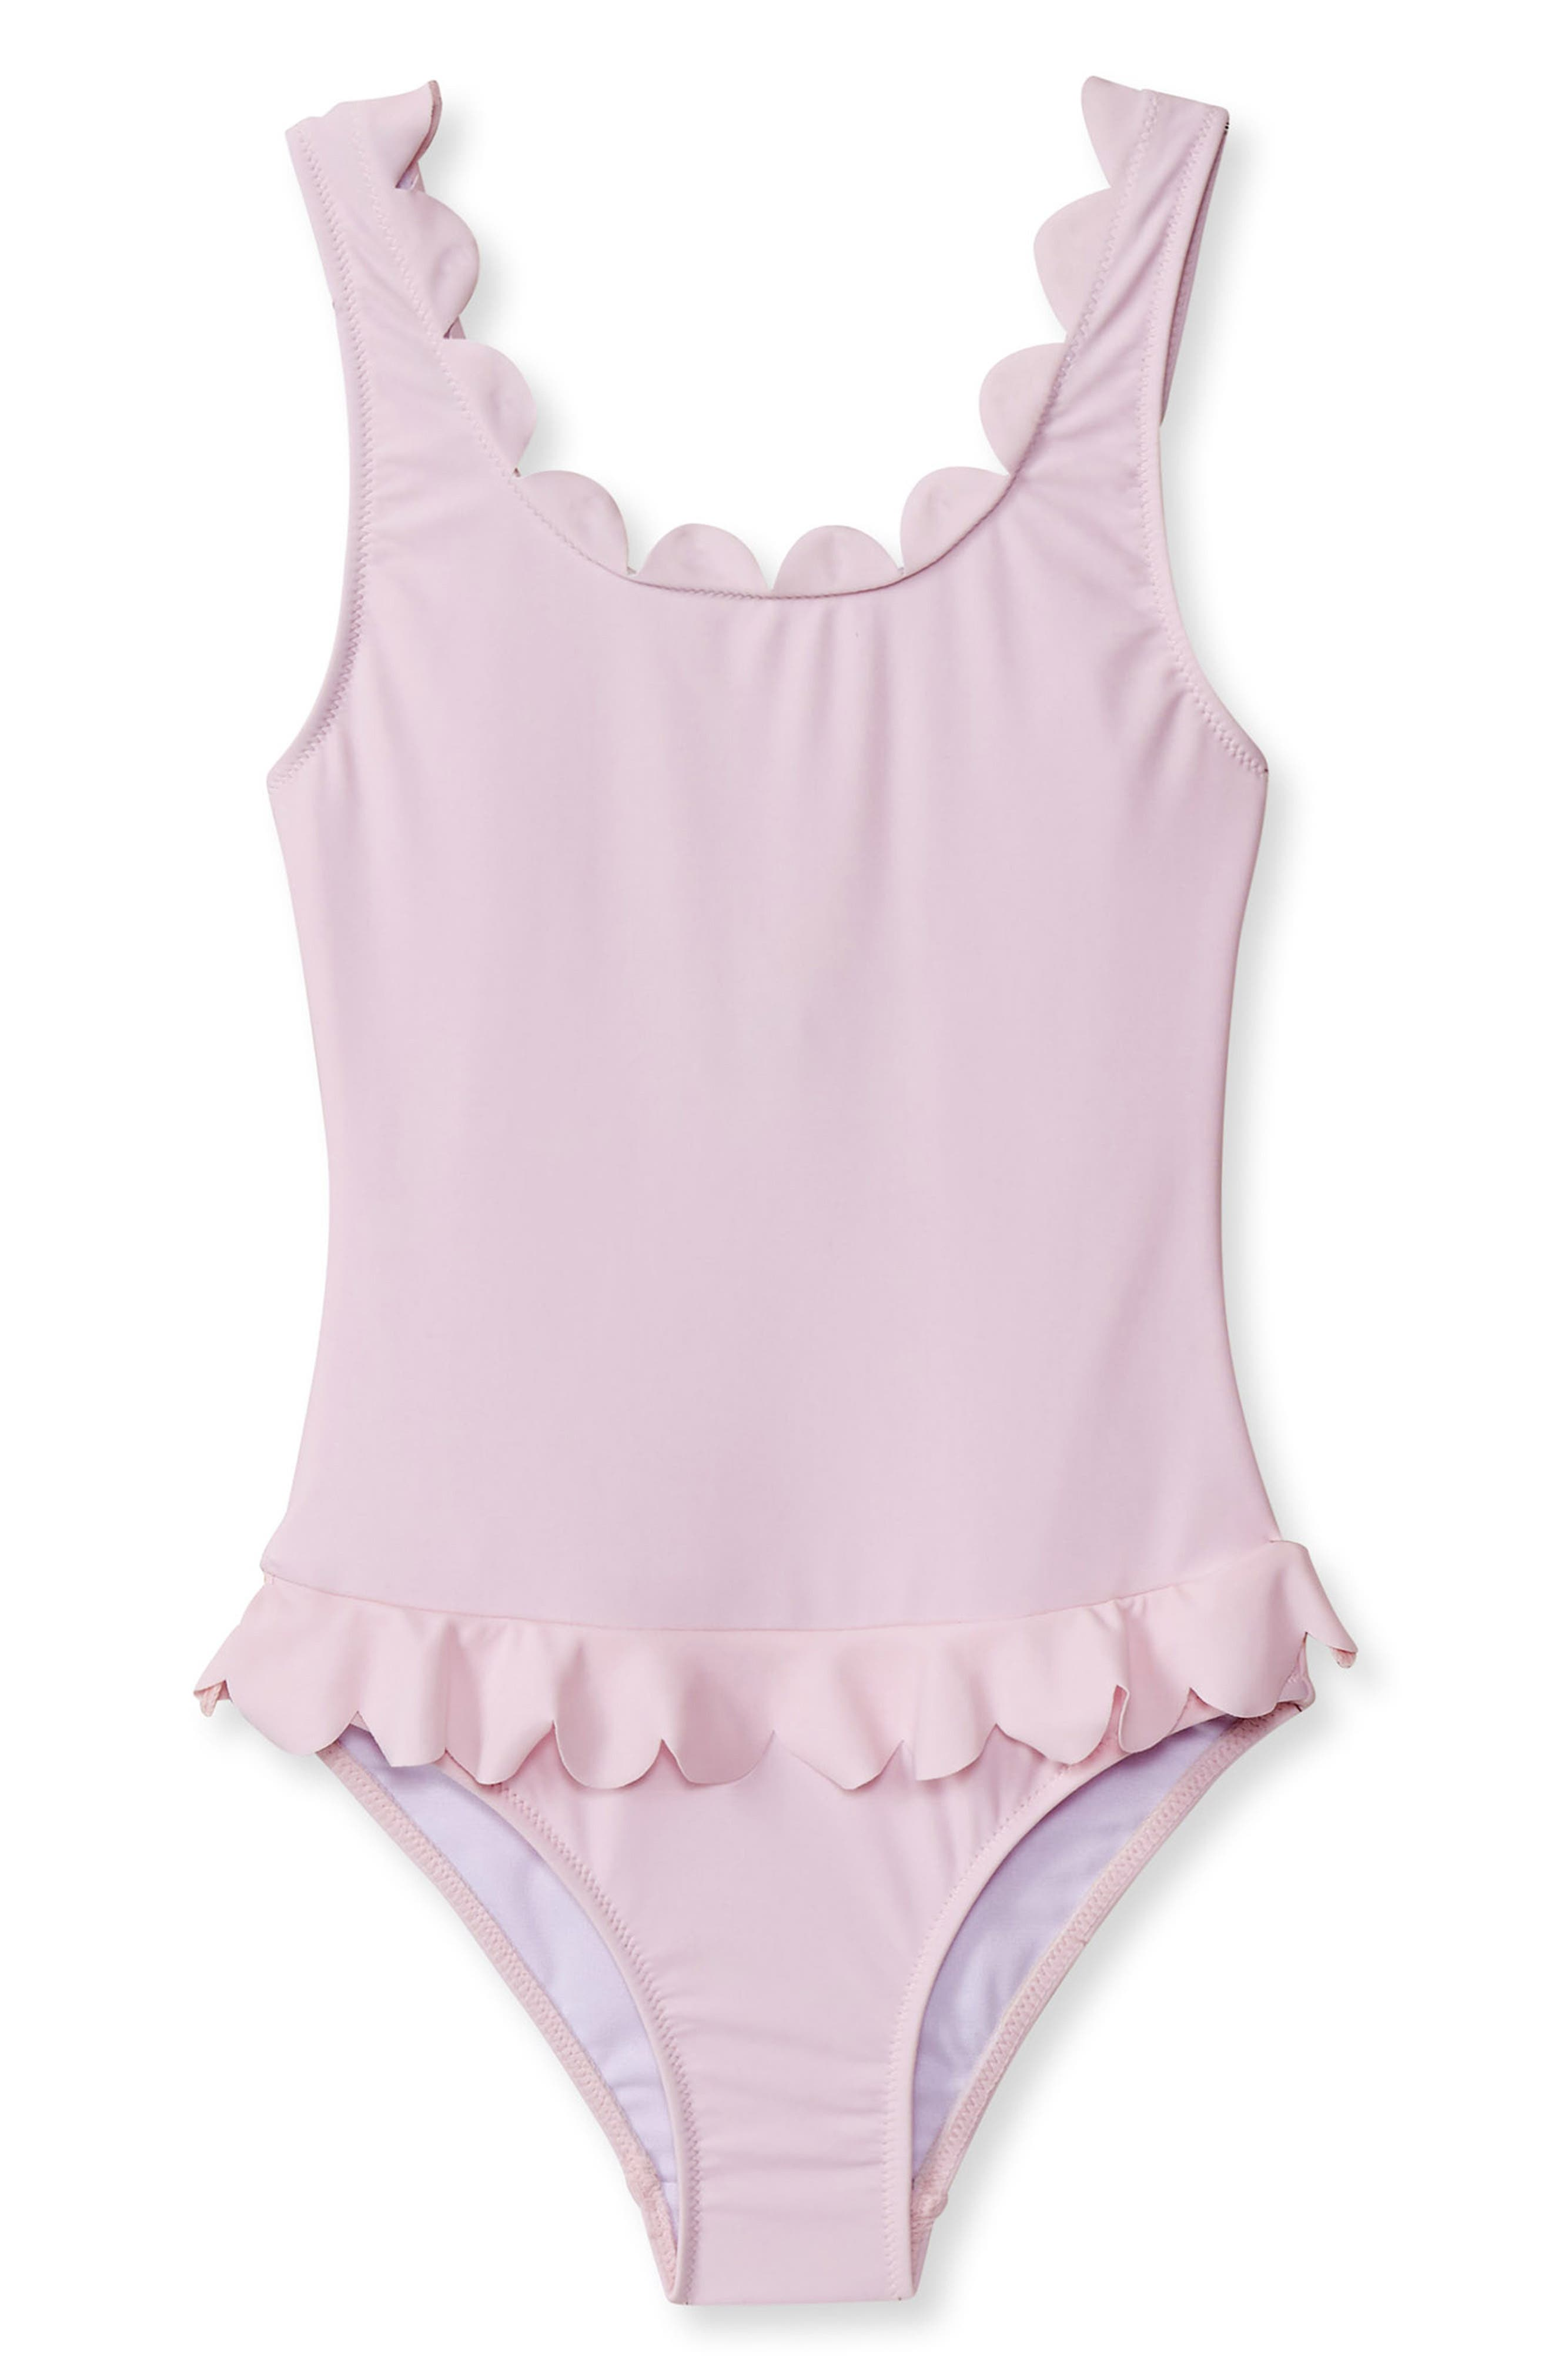 STELLA COVE Scalloped One-Piece Swimsuit, Main, color, PINK